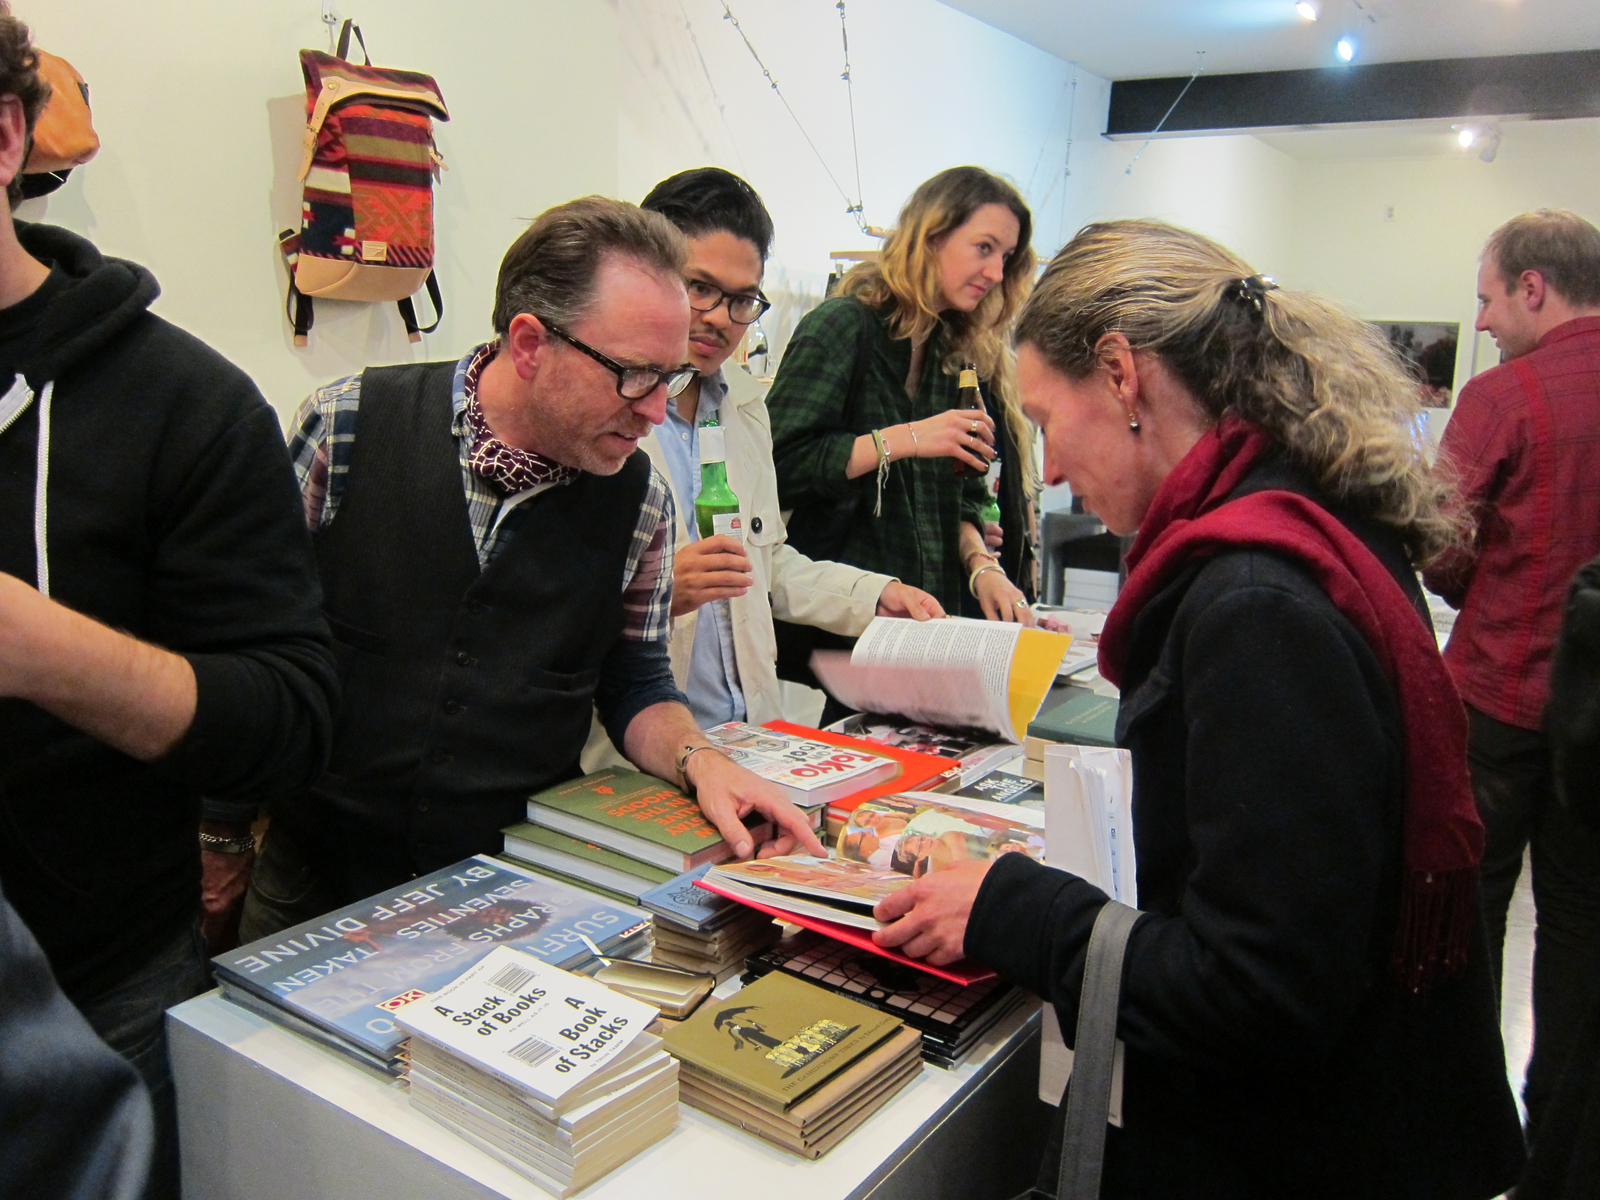 Through the holiday season, the San Francisco menswear shop Maas & Stacks is hosting a pop-up gift shop curated by Larry Schaffer (in the glasses and vest) of the LA design shop OK Gallery. Quite a good crowd turned out for the opening party on November 1